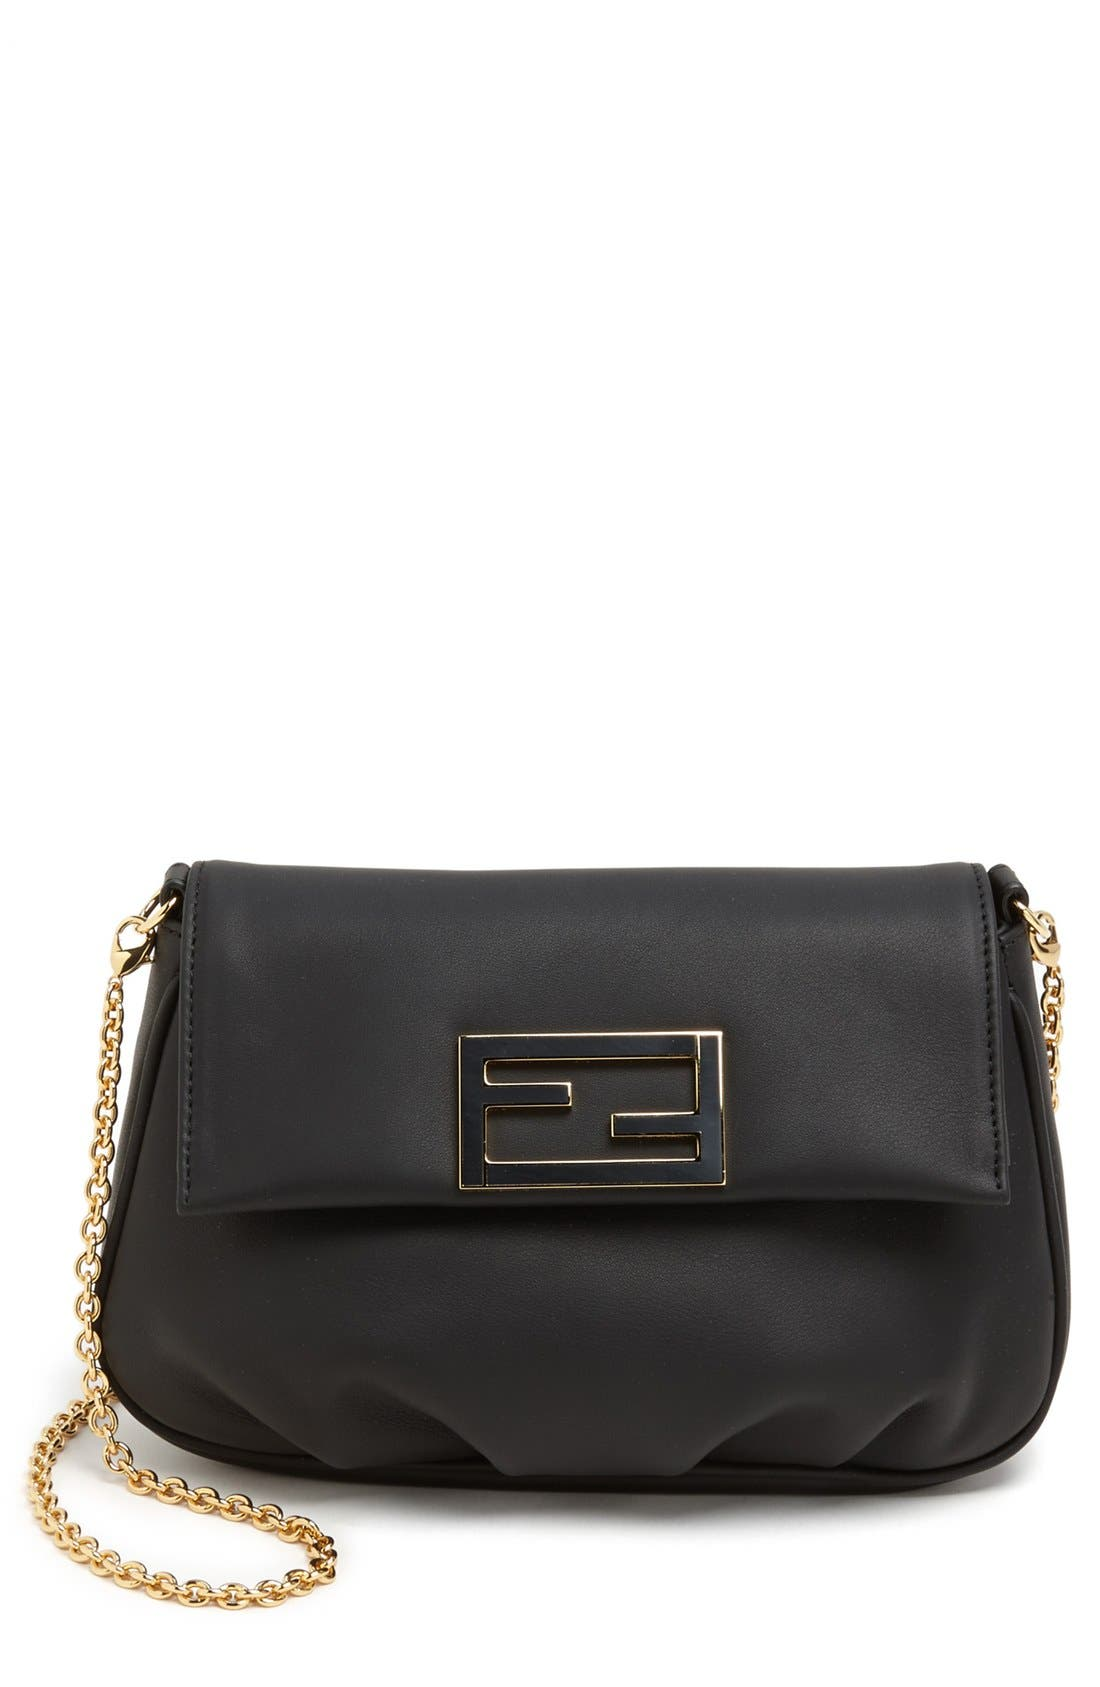 Main Image - Fendi 'Fendista' Pouchette Crossbody Bag